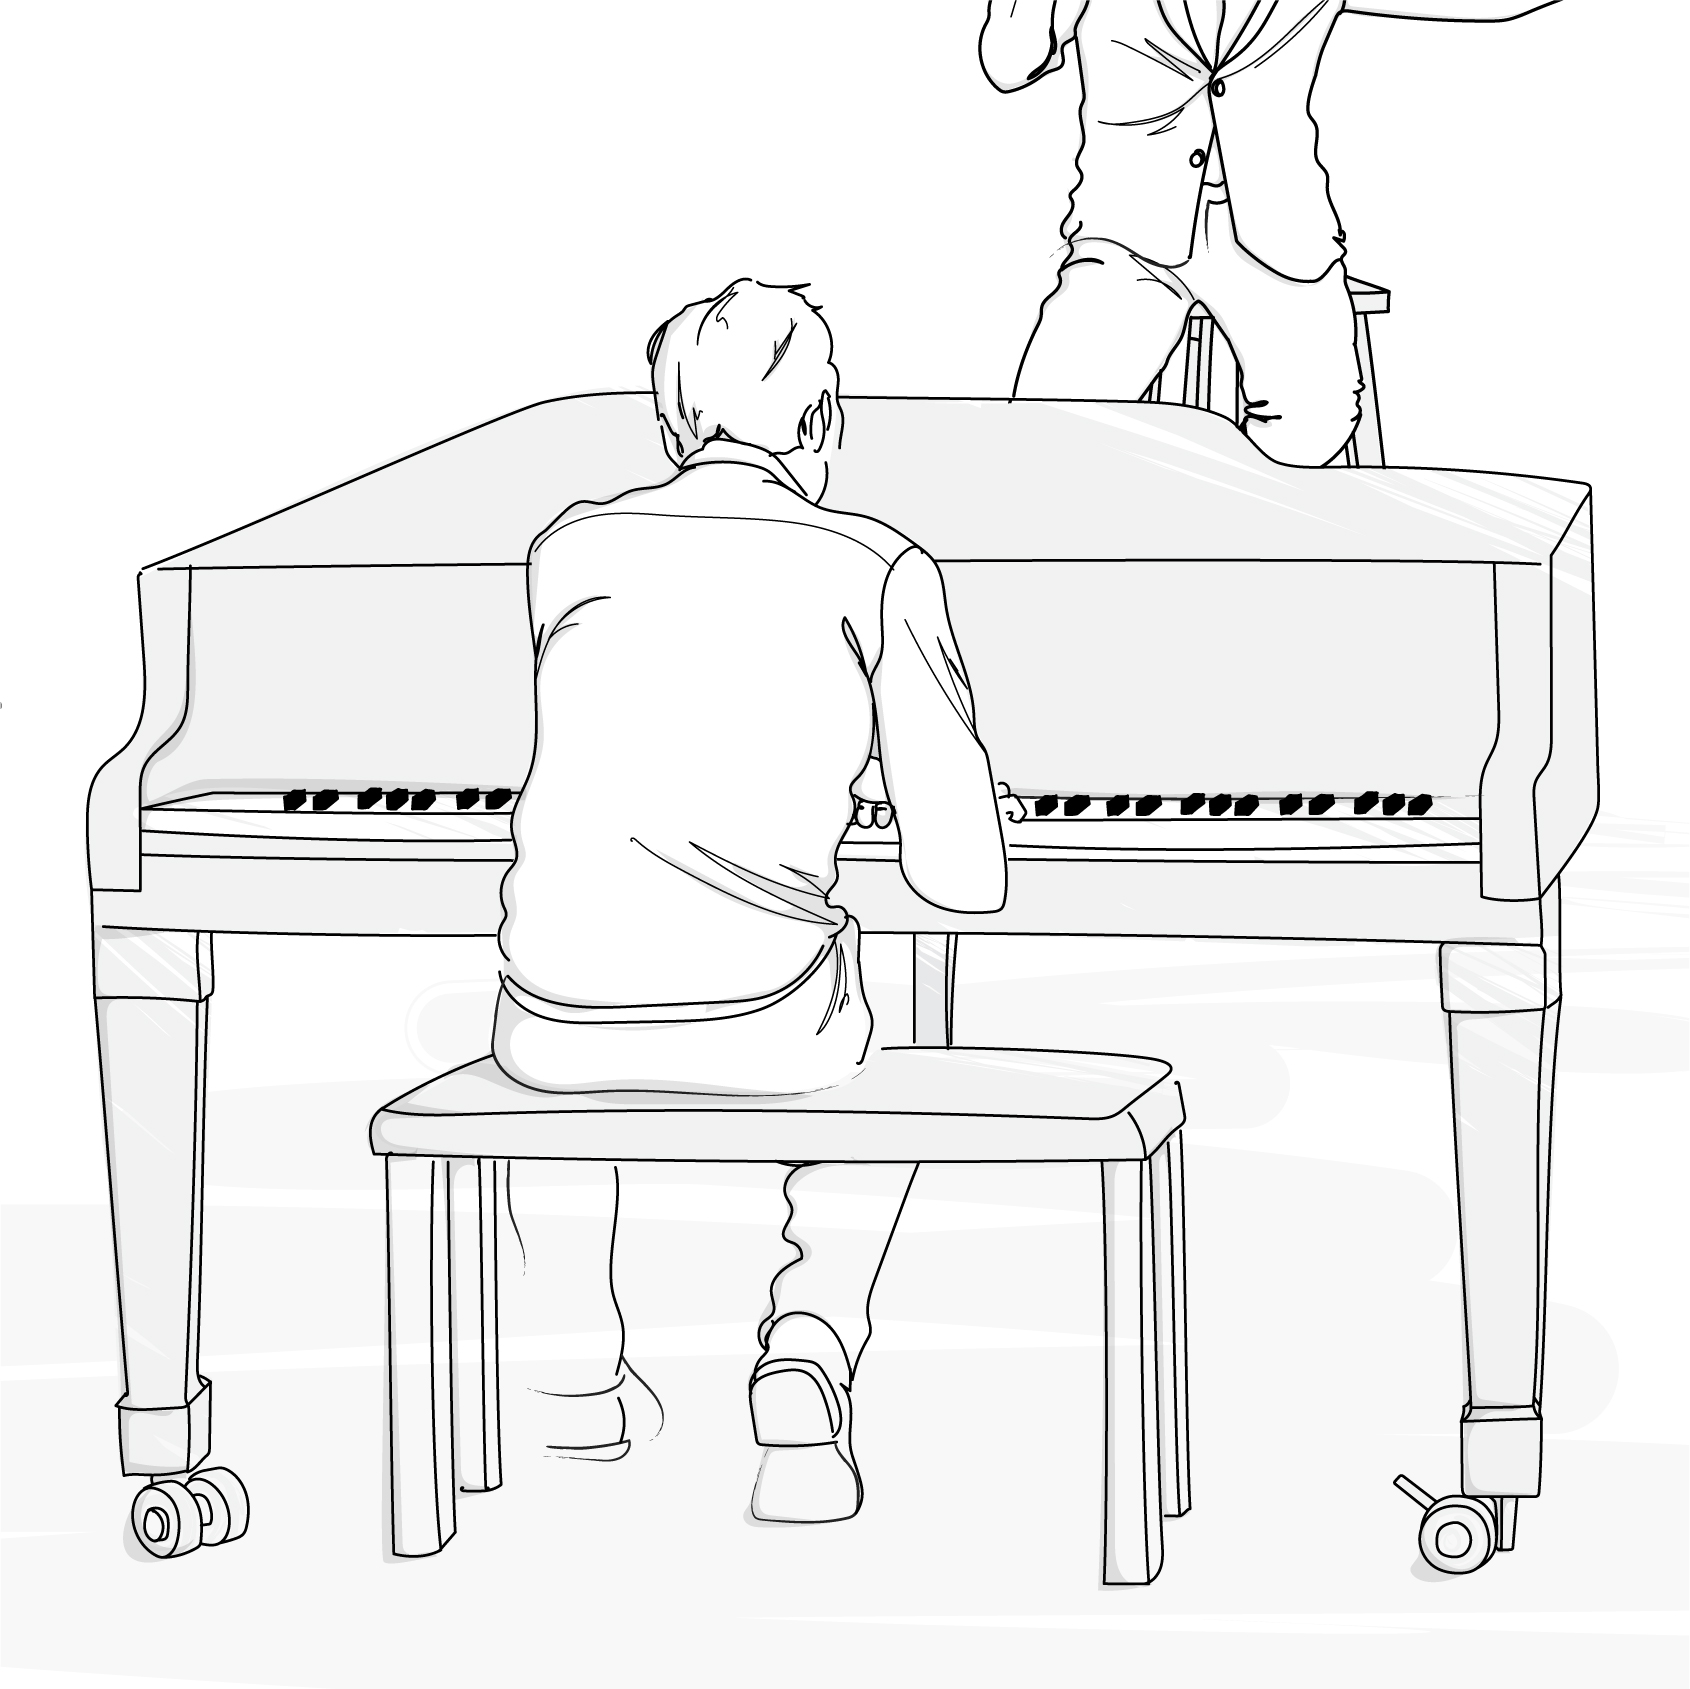 Piano player